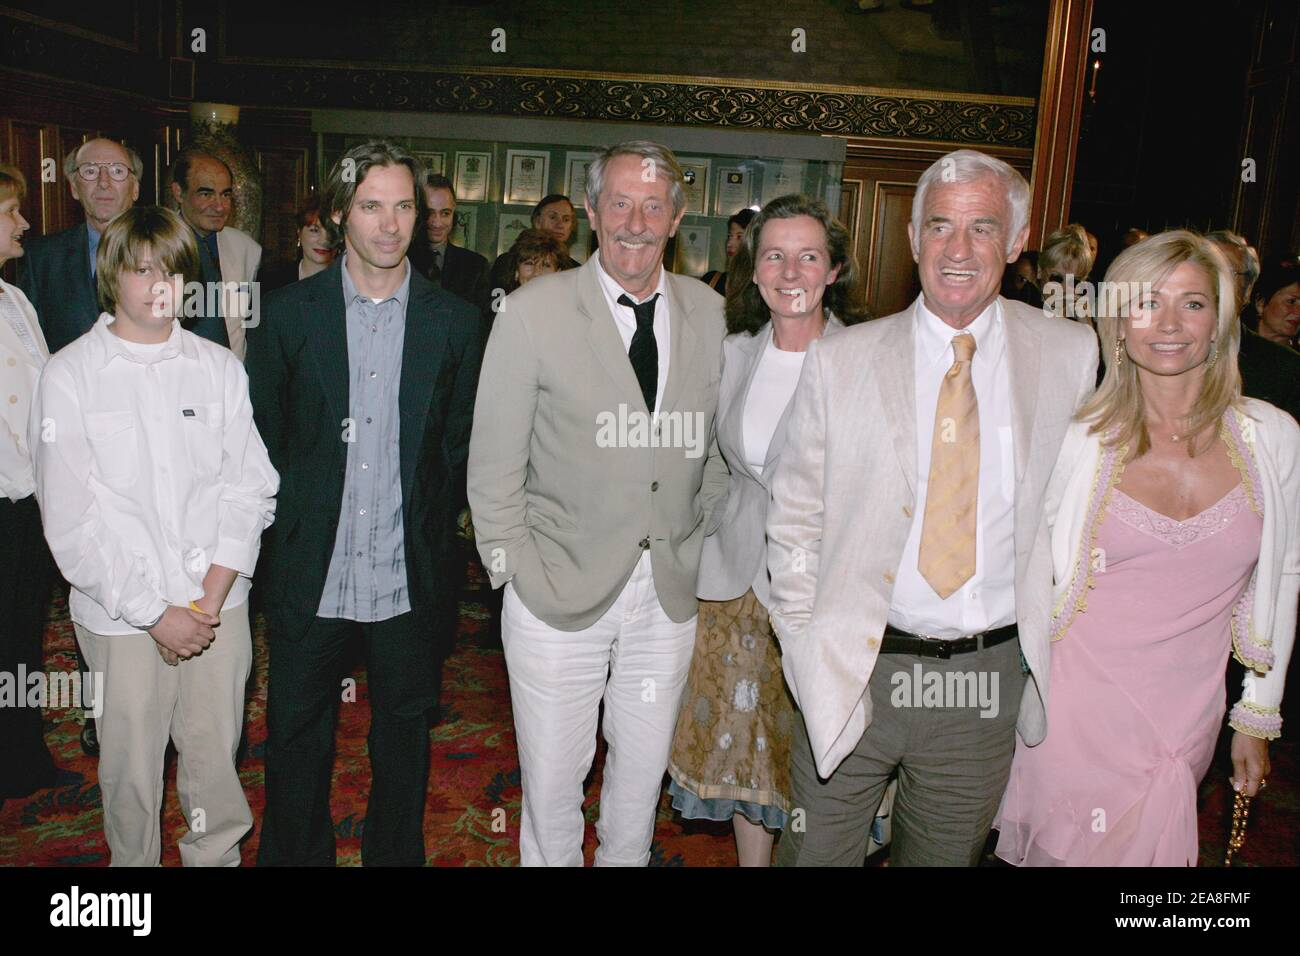 L To R French Actor Jean Paul Belmondo S Grandson Alessandro His Father Paul Belmondo French Actor Jean Rochefort And Wife Francoise Jean Paul Belmondo And Wife Natti Pictured During The Opening Ceremony Of The